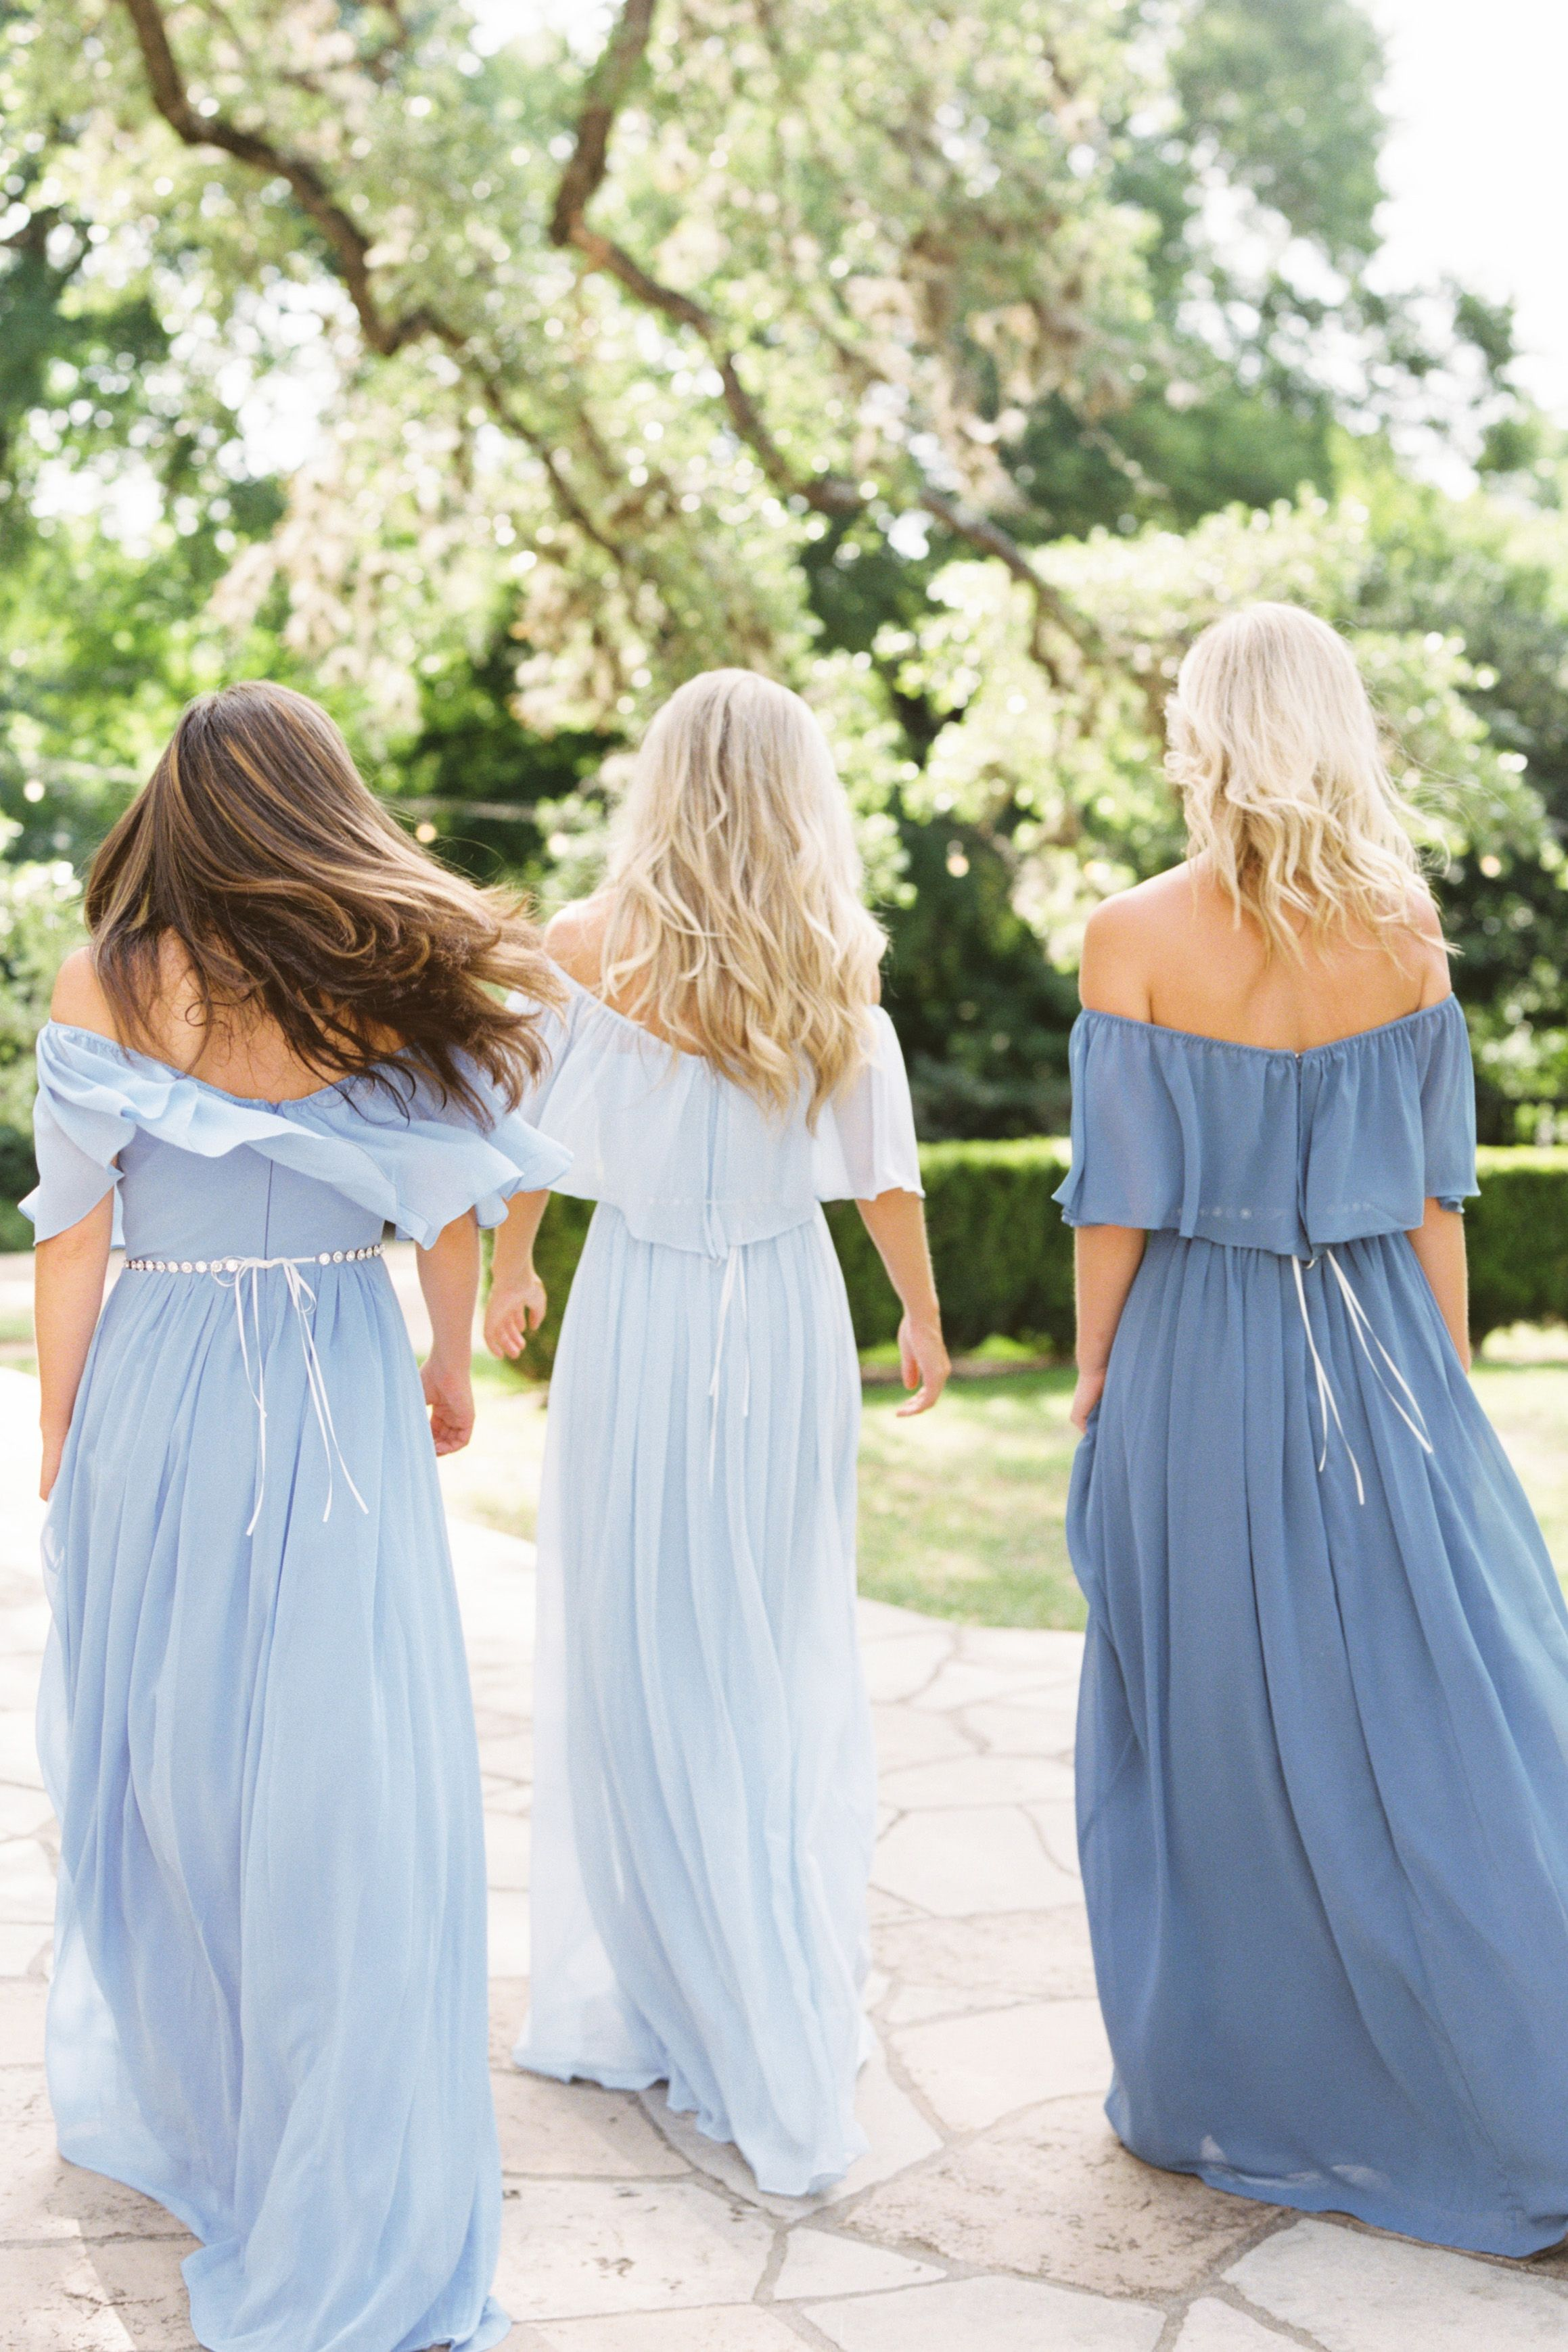 Boho off the shoulder bridesmaid dresses